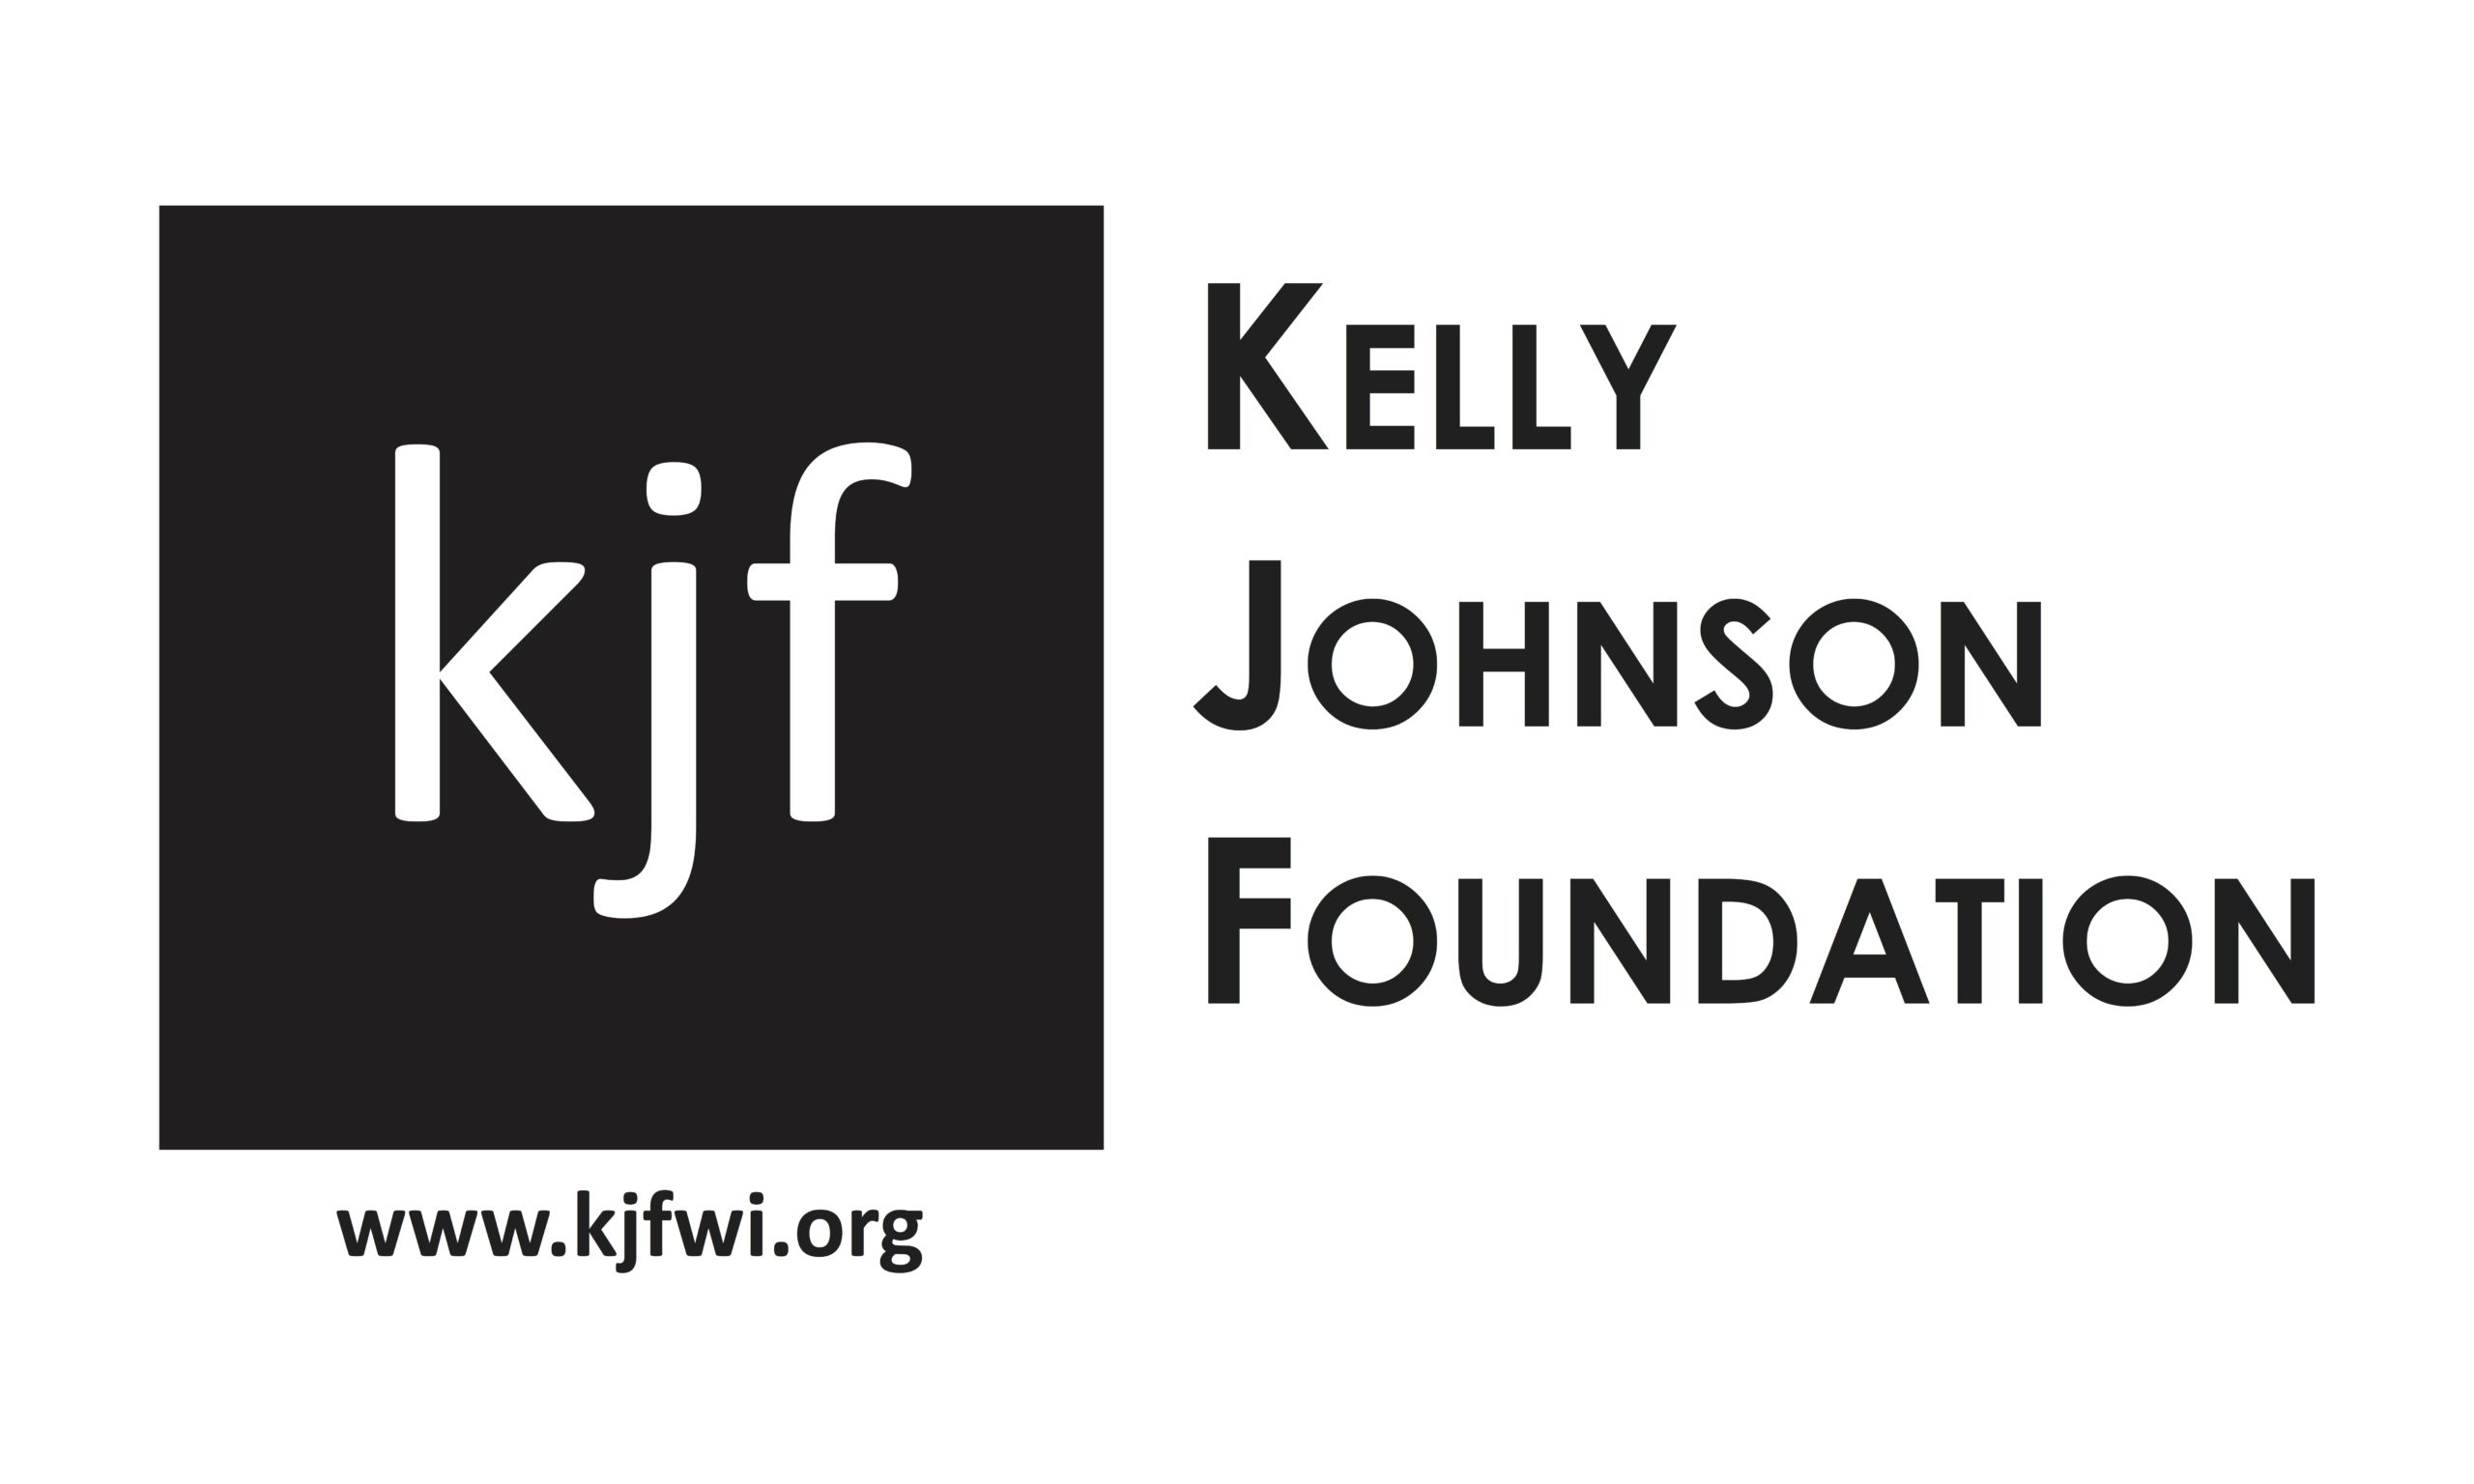 Kelly_Johnson_Foundation_Logo